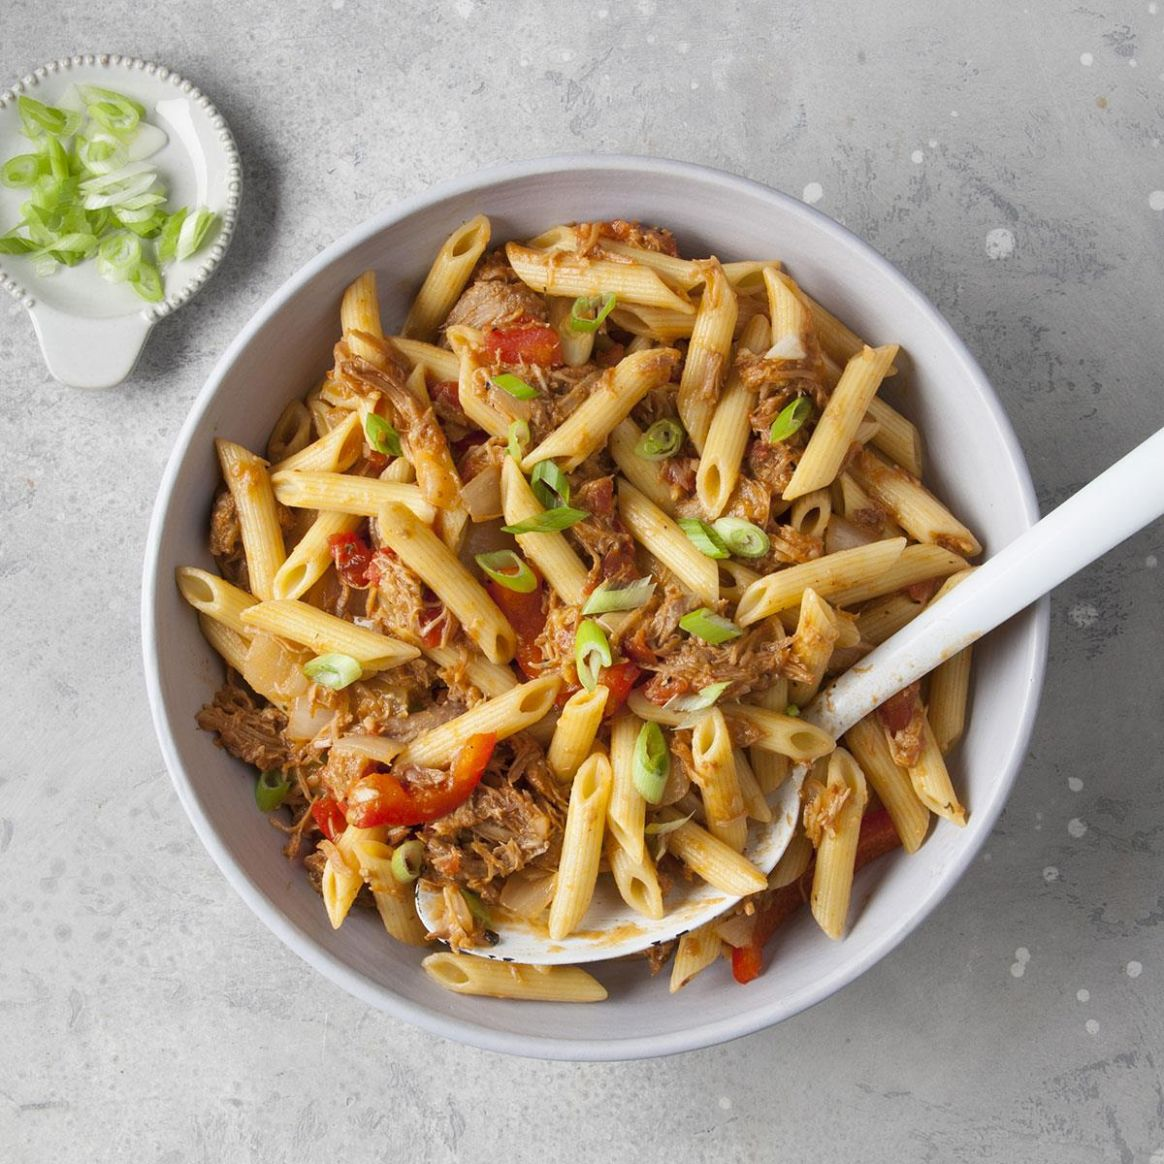 Barbecue Pork and Penne Skillet - Recipes Pork With Pasta